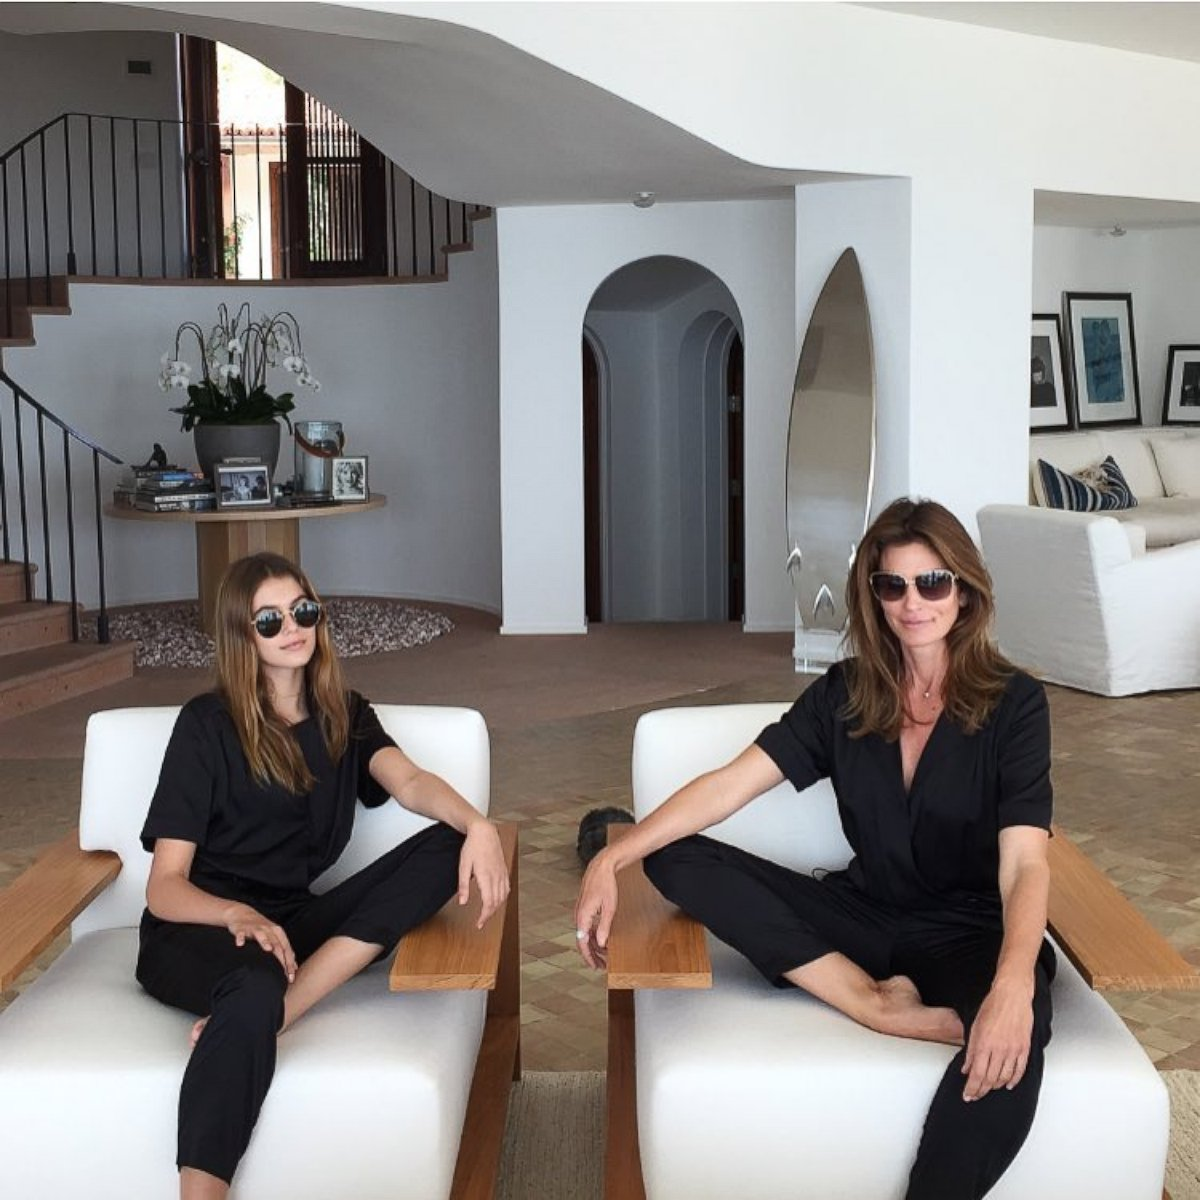 Cindy Crawford Home Cindy Crawford Videos At Abc News Video Archive At Abcnewscom